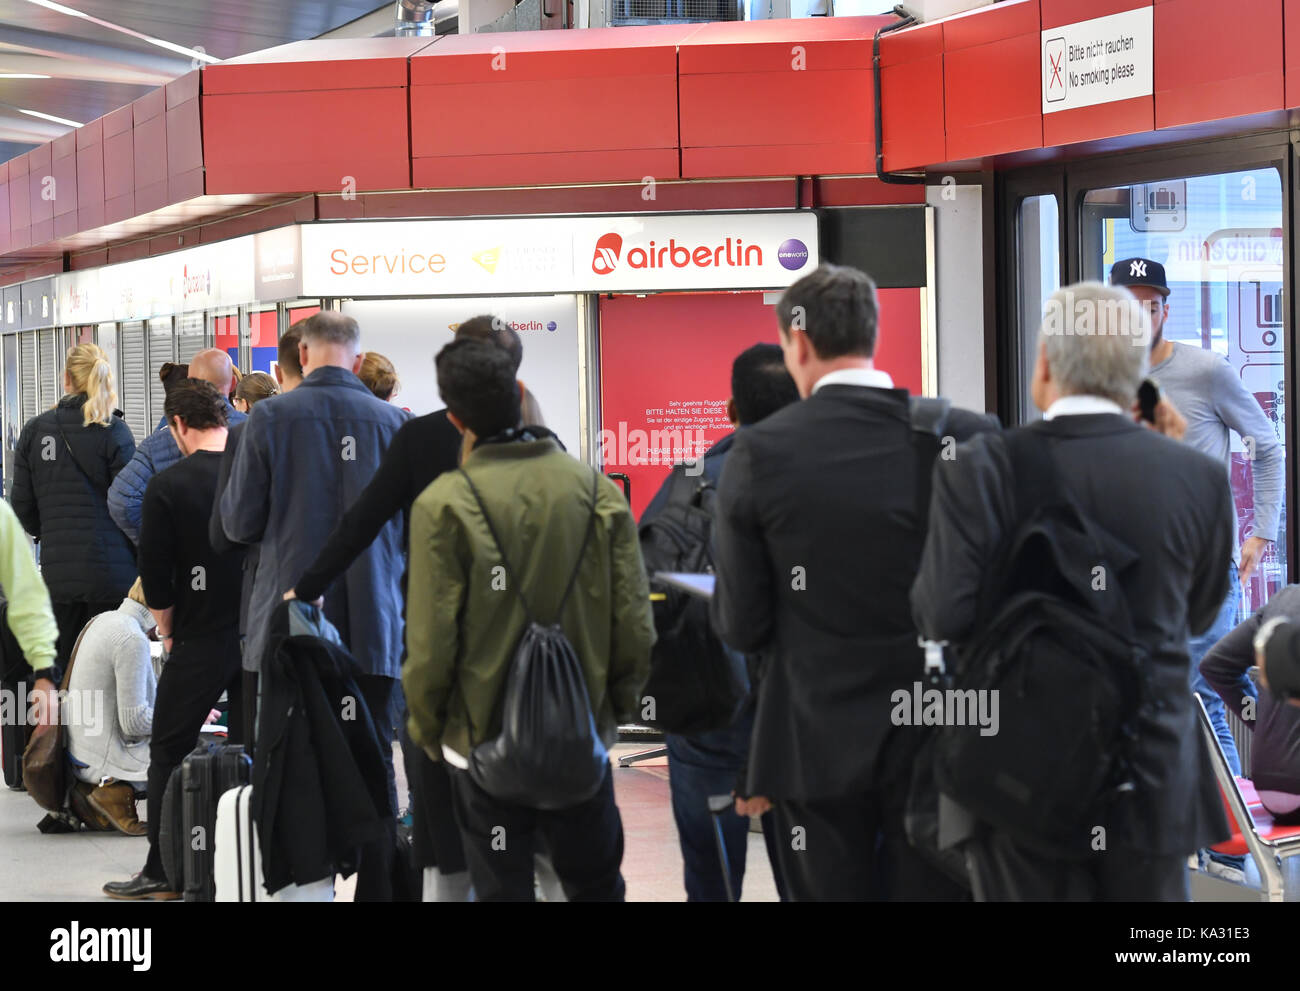 Passengers queue at an Air Berlin terminal in Tegel airport, Germany, 25 September 2017. The company's creditors - Stock Image